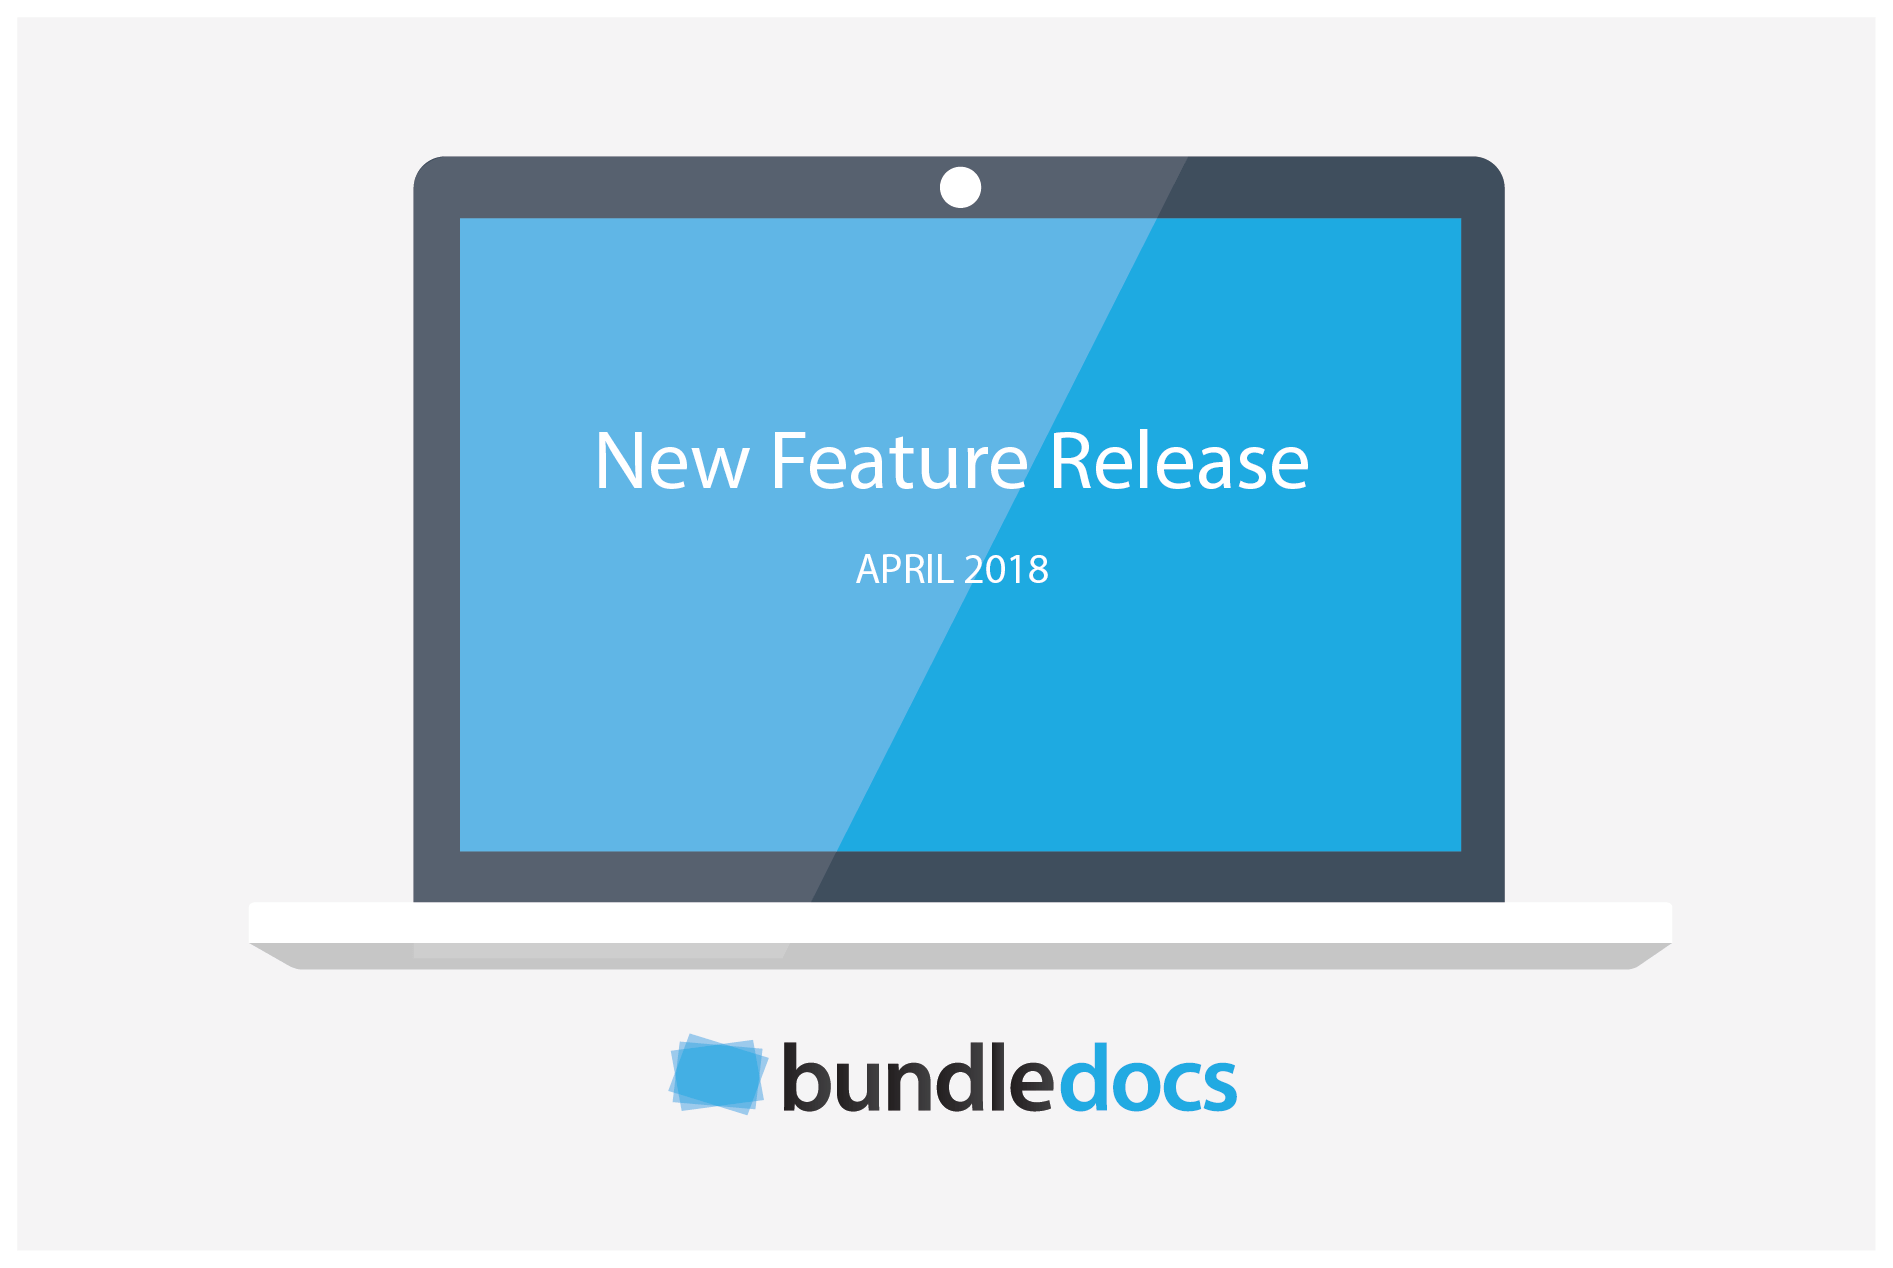 Bundledocs_New_Feature_Release_April_2018.png